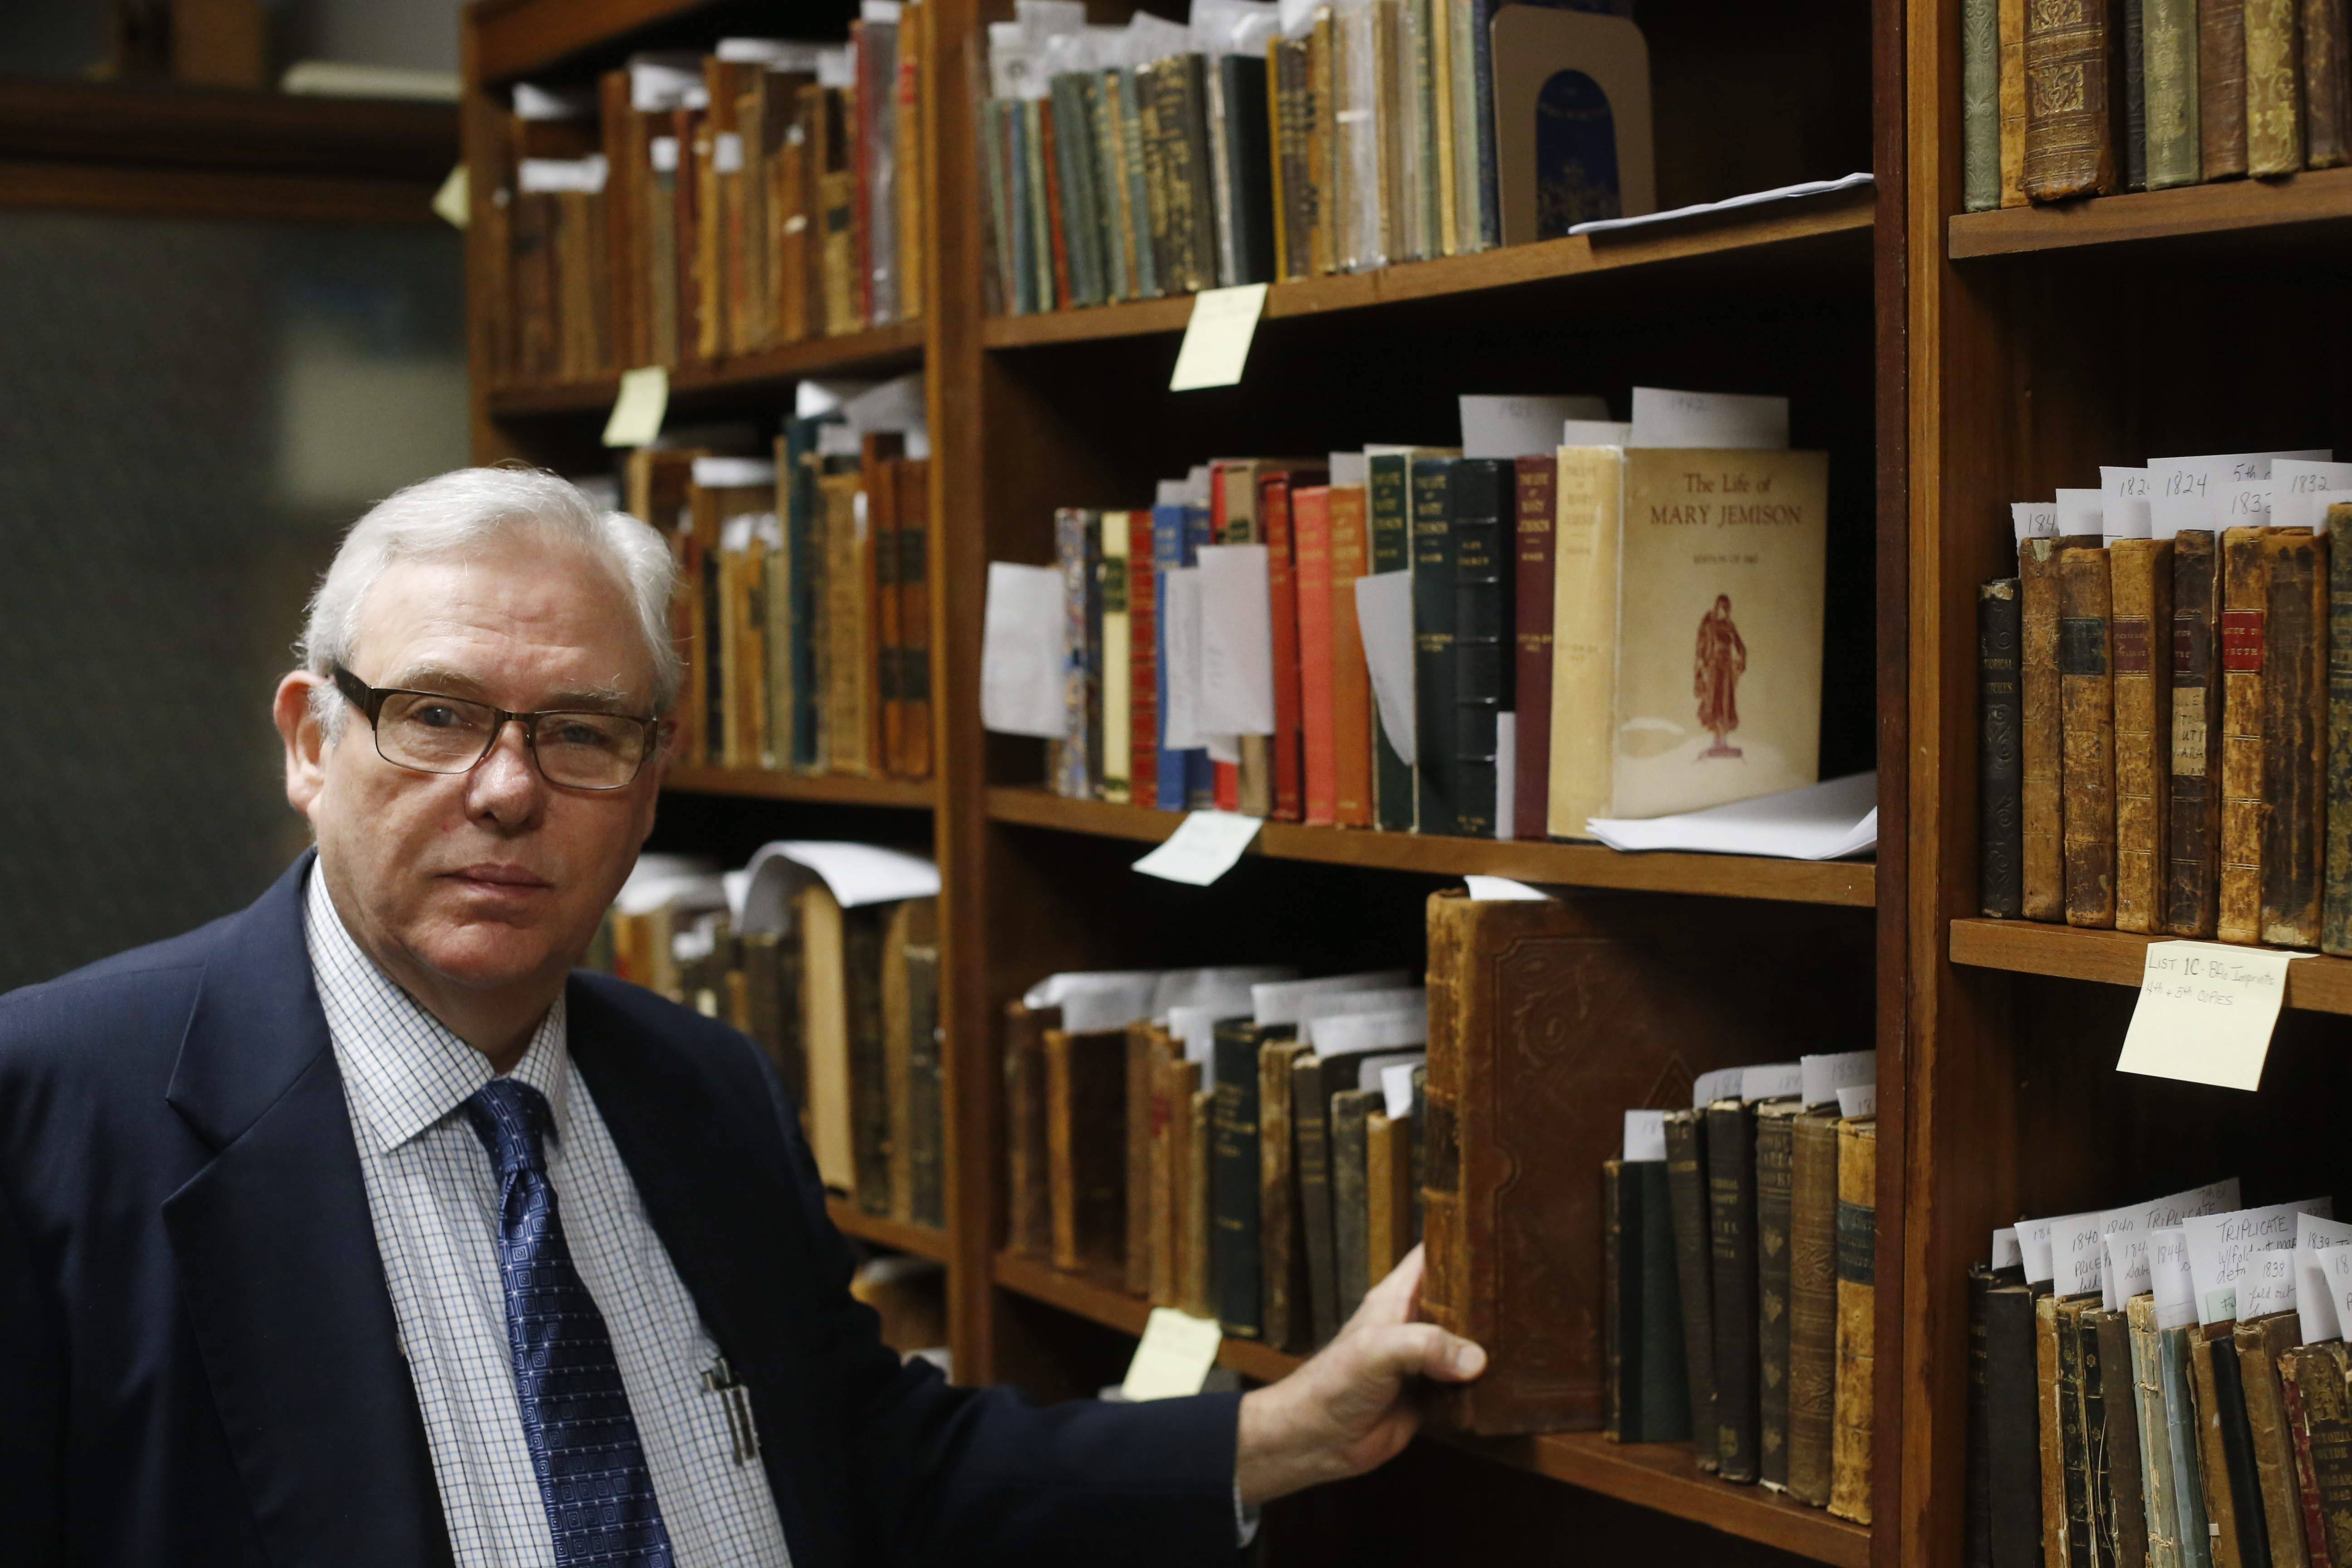 Ronald Cozzi, president of Old Editions Book Shop, looks through some of the 600 books in the collection of the late Eugene Musial, who amassed the largest collection of rare books printed in Buffalo in the 1800s. The collection is now for sale.